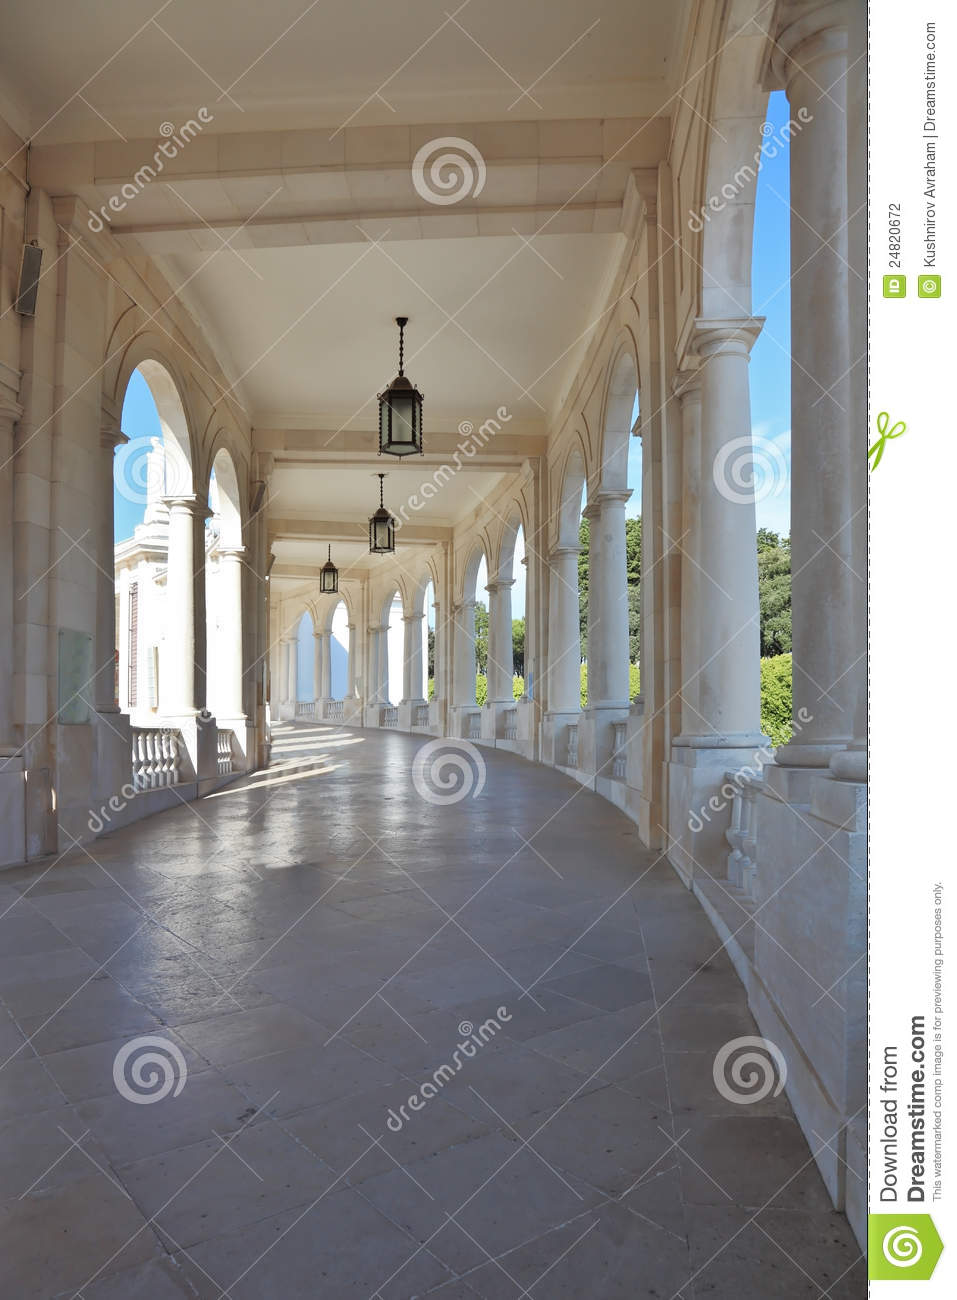 Cool Marble Gallery Stock Photo Image Of Virgin